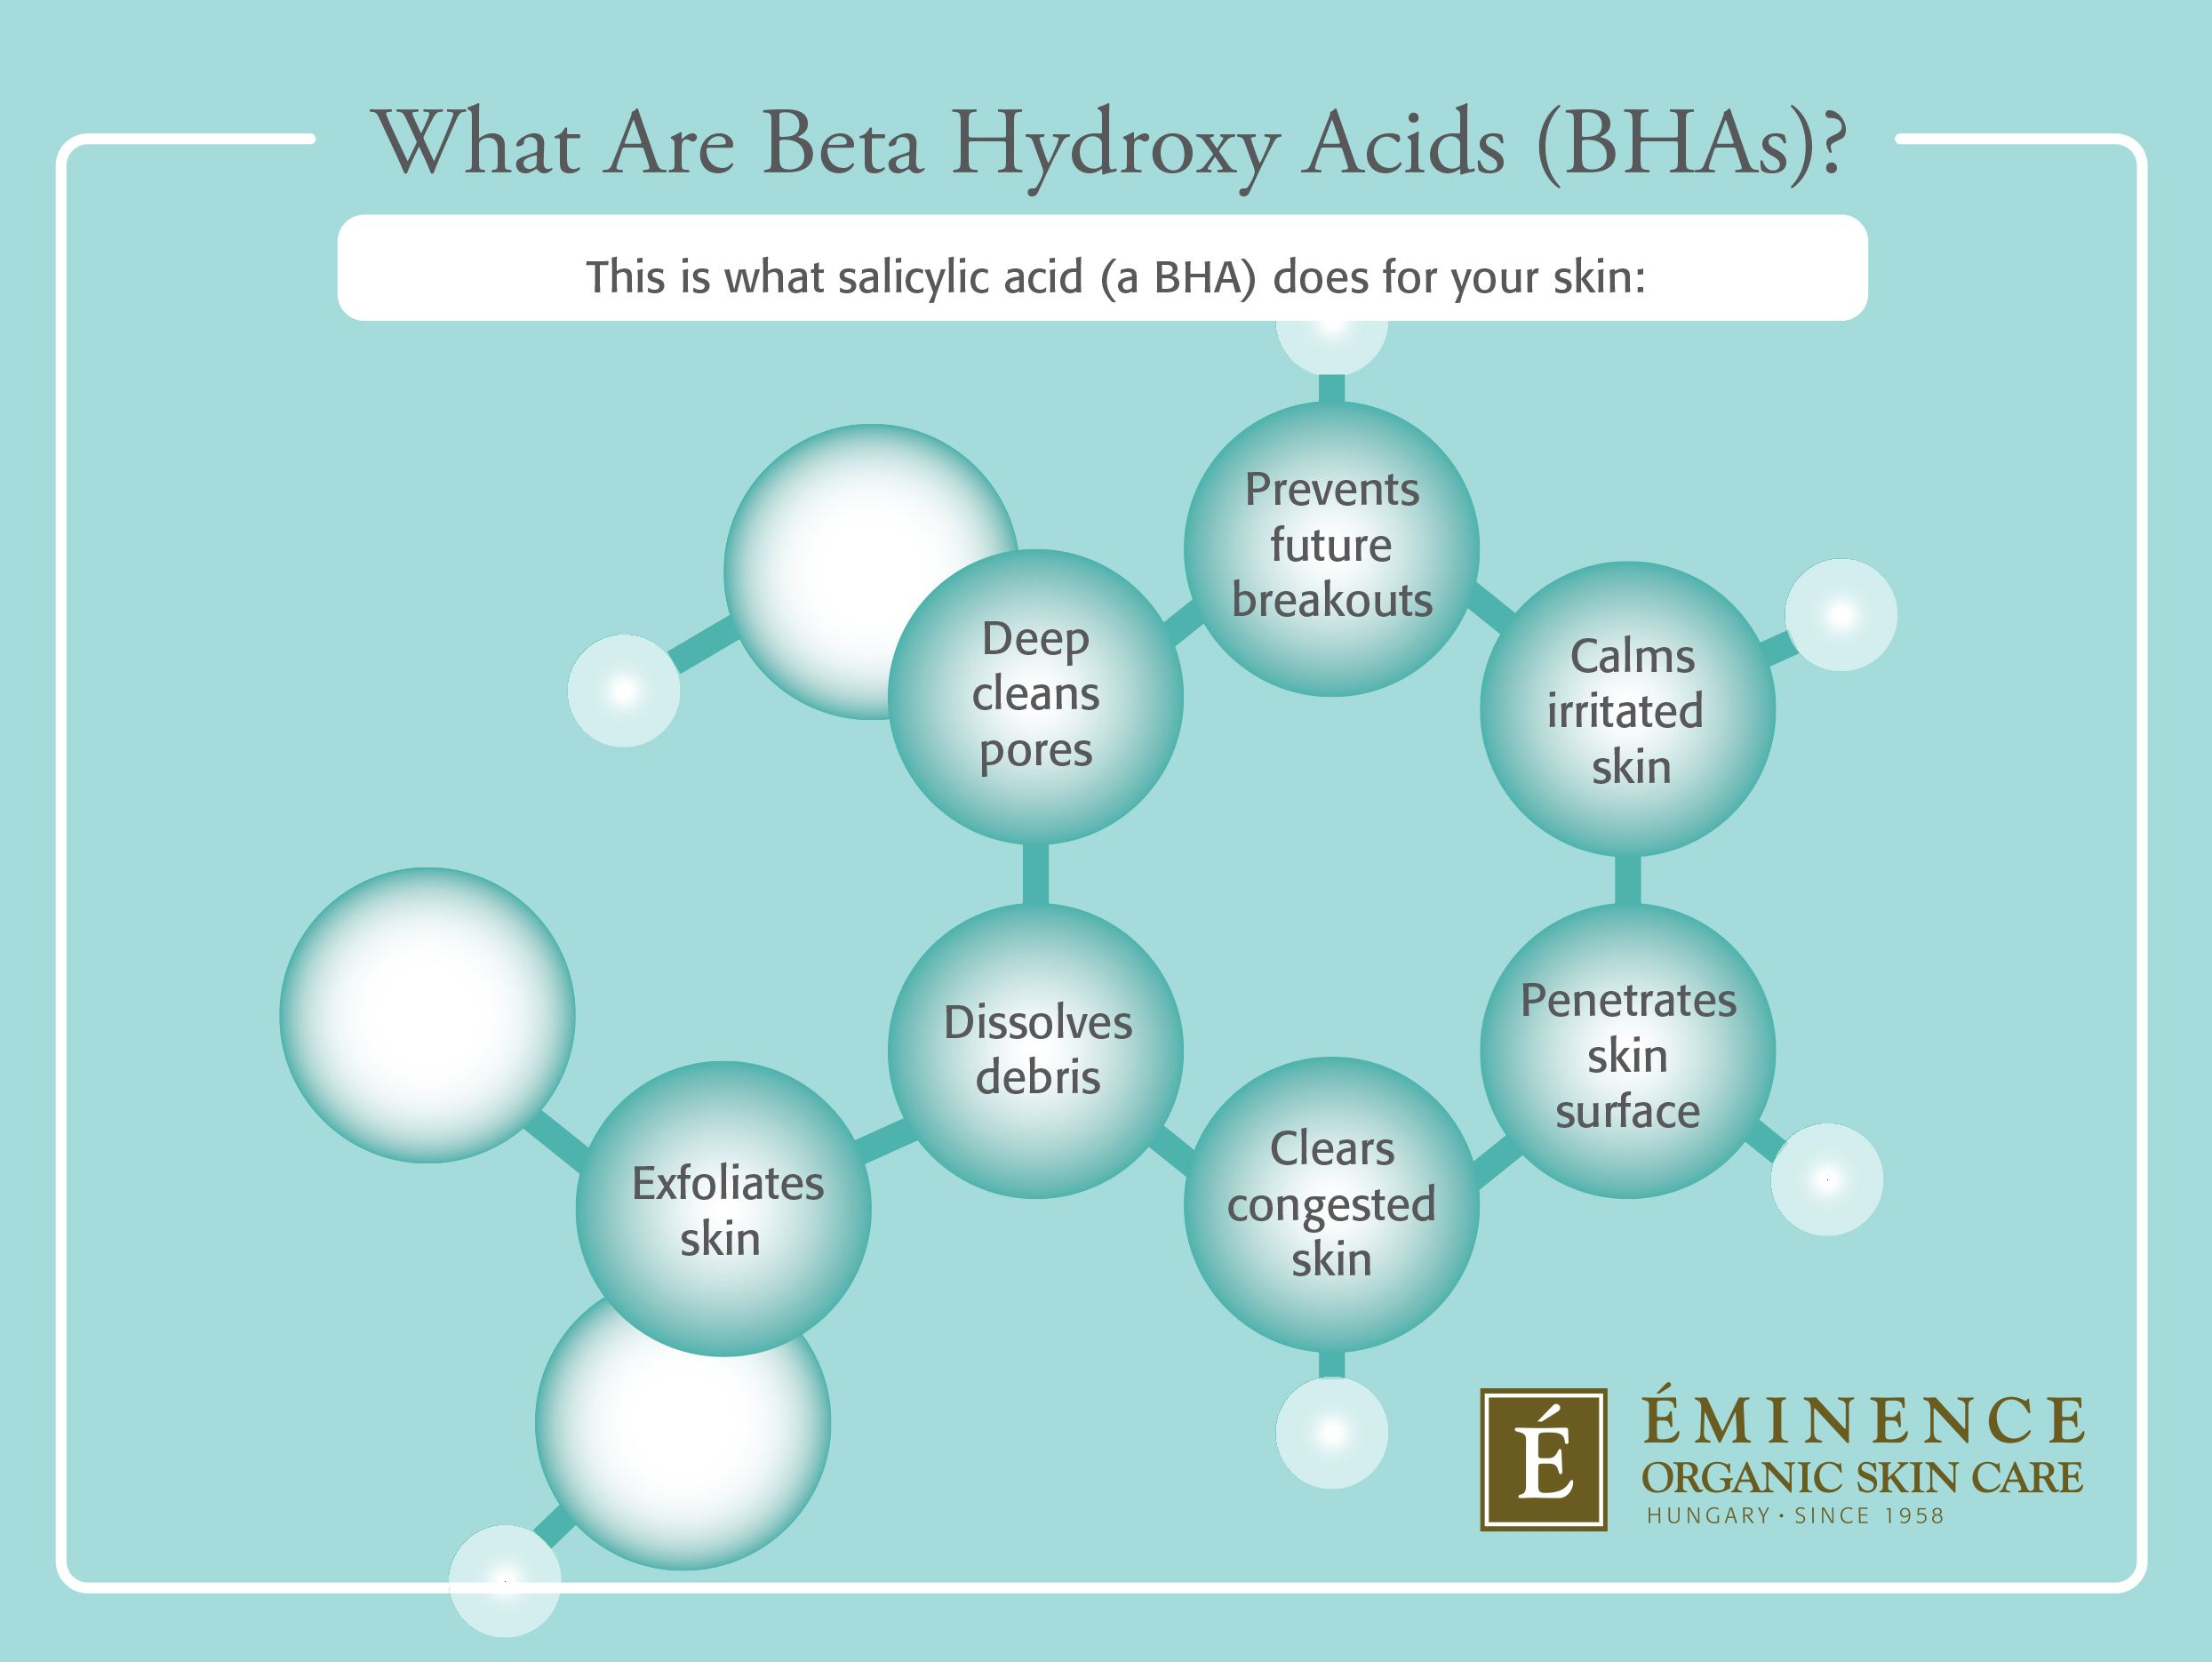 Diagram of what Beta Hydroxy Acids (BHAs) can do for your skin